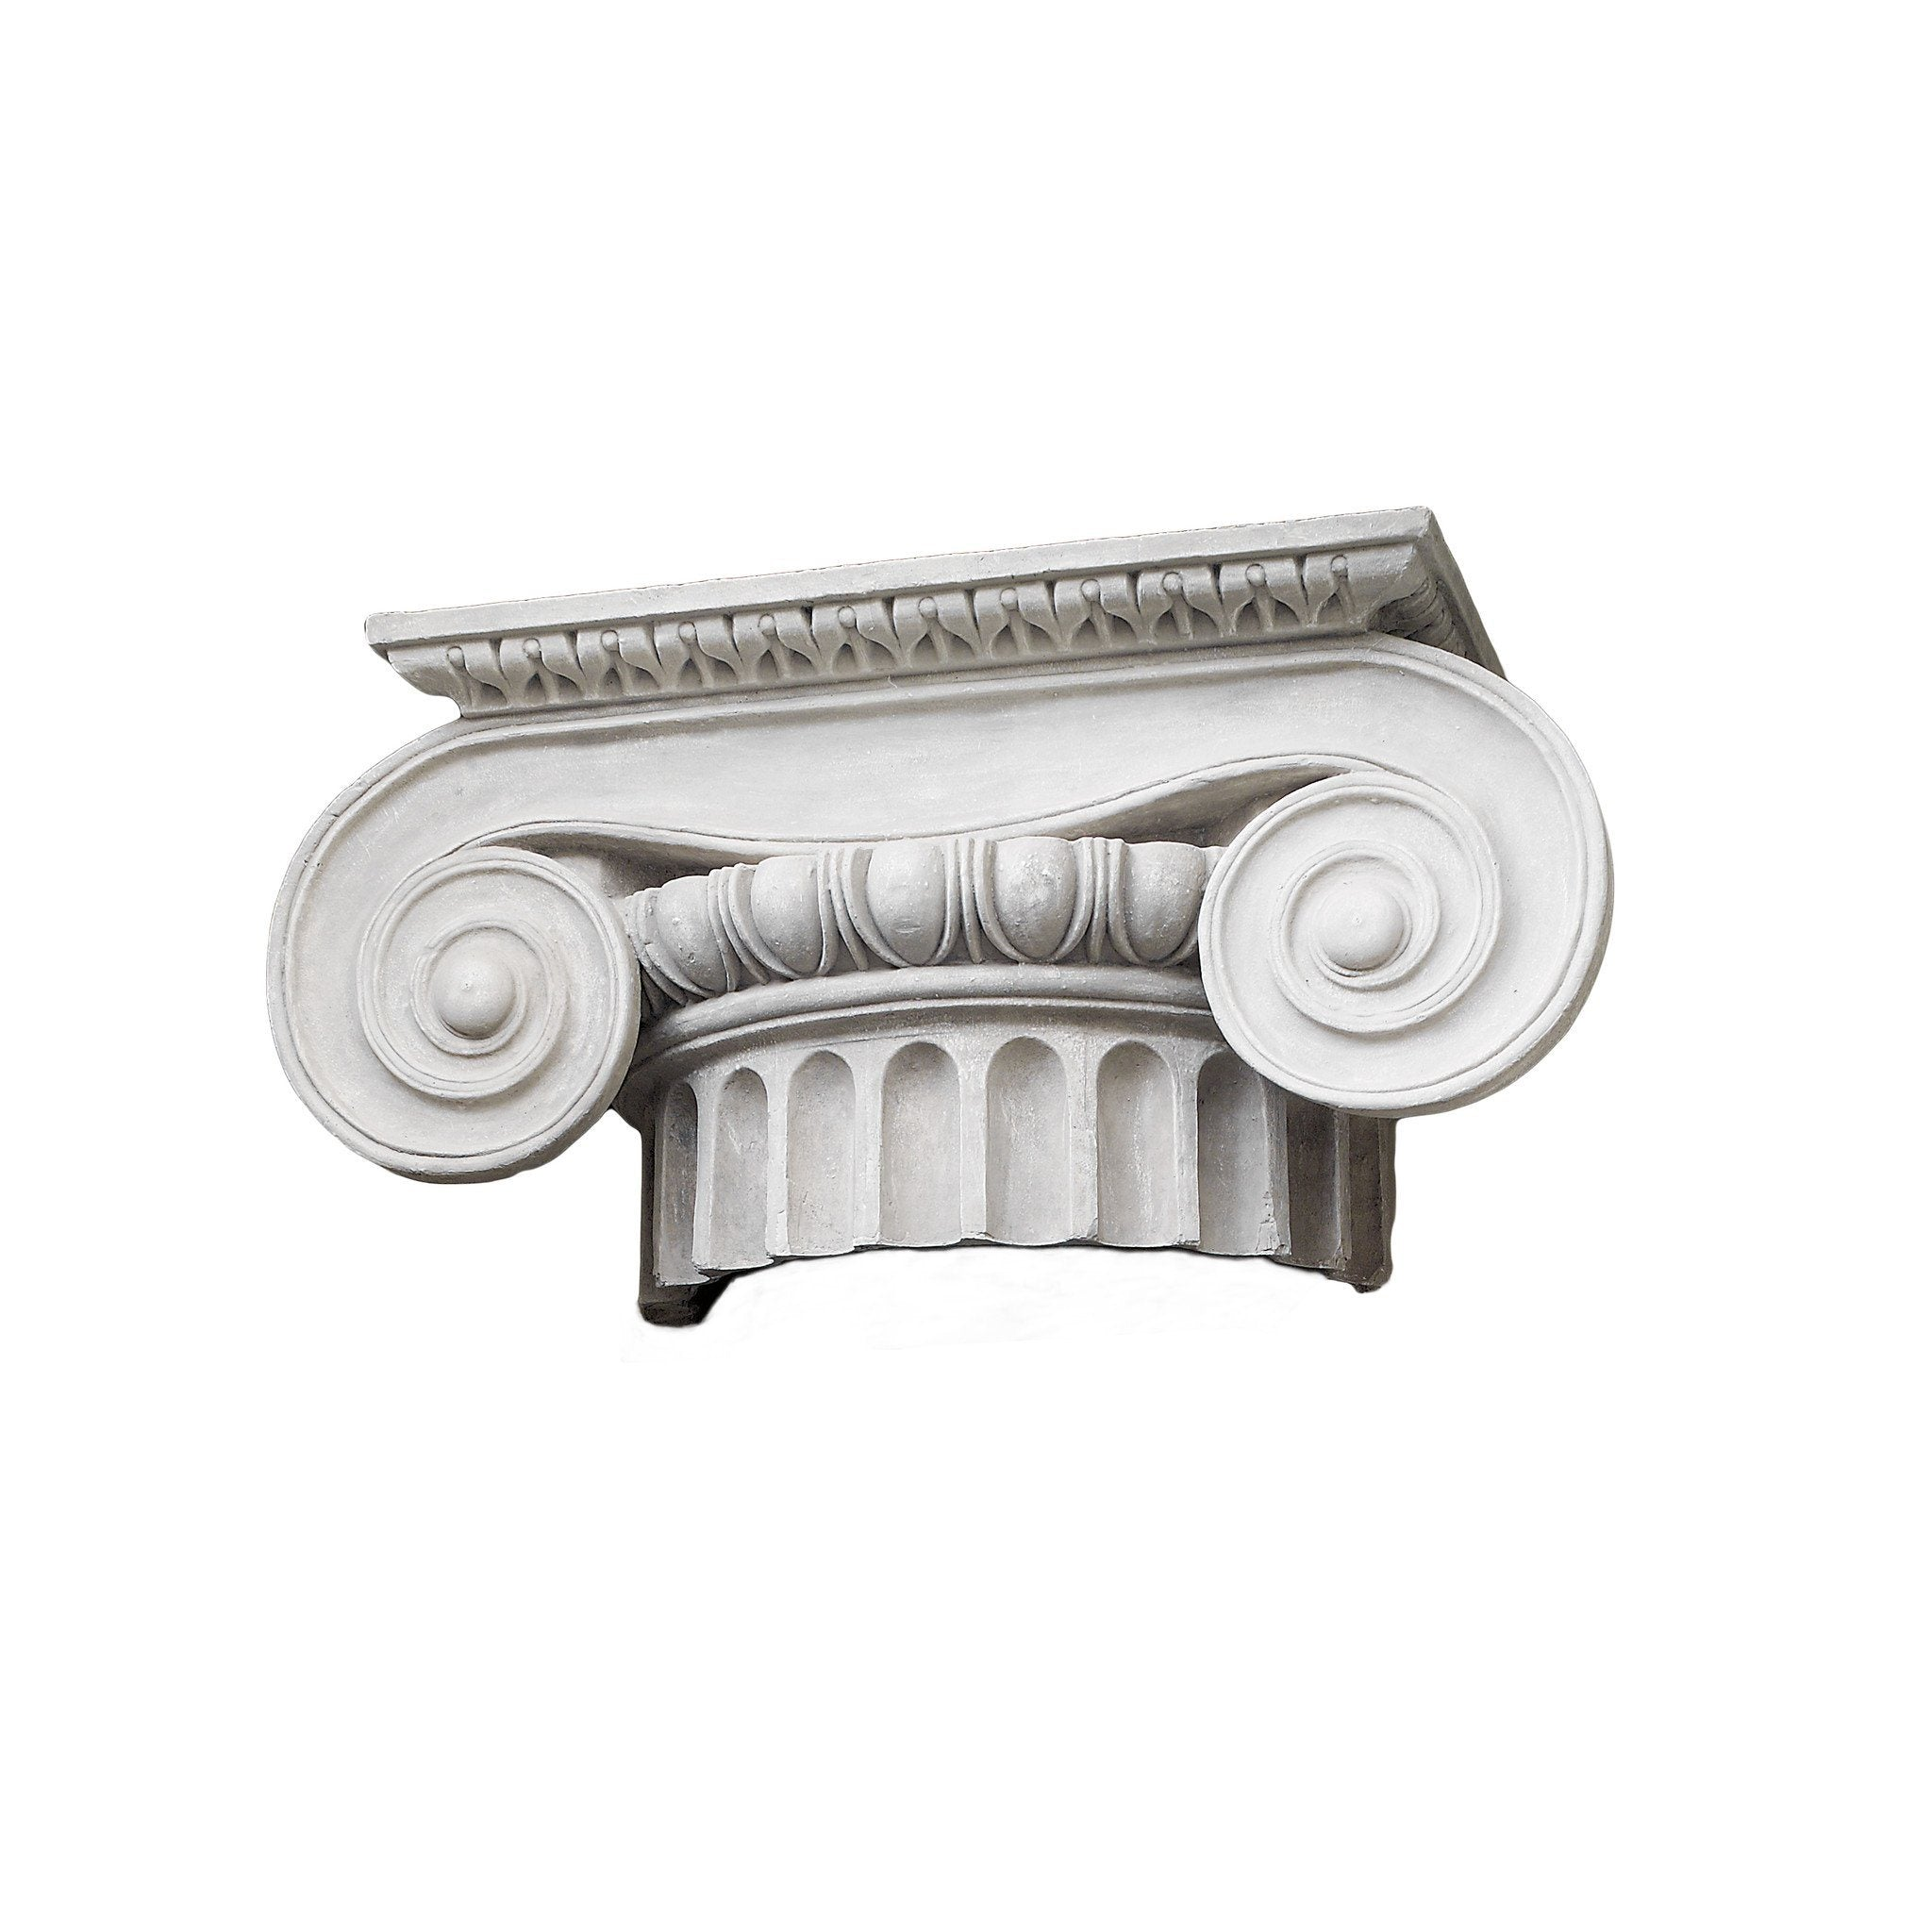 Large Ionic Plaster Capital